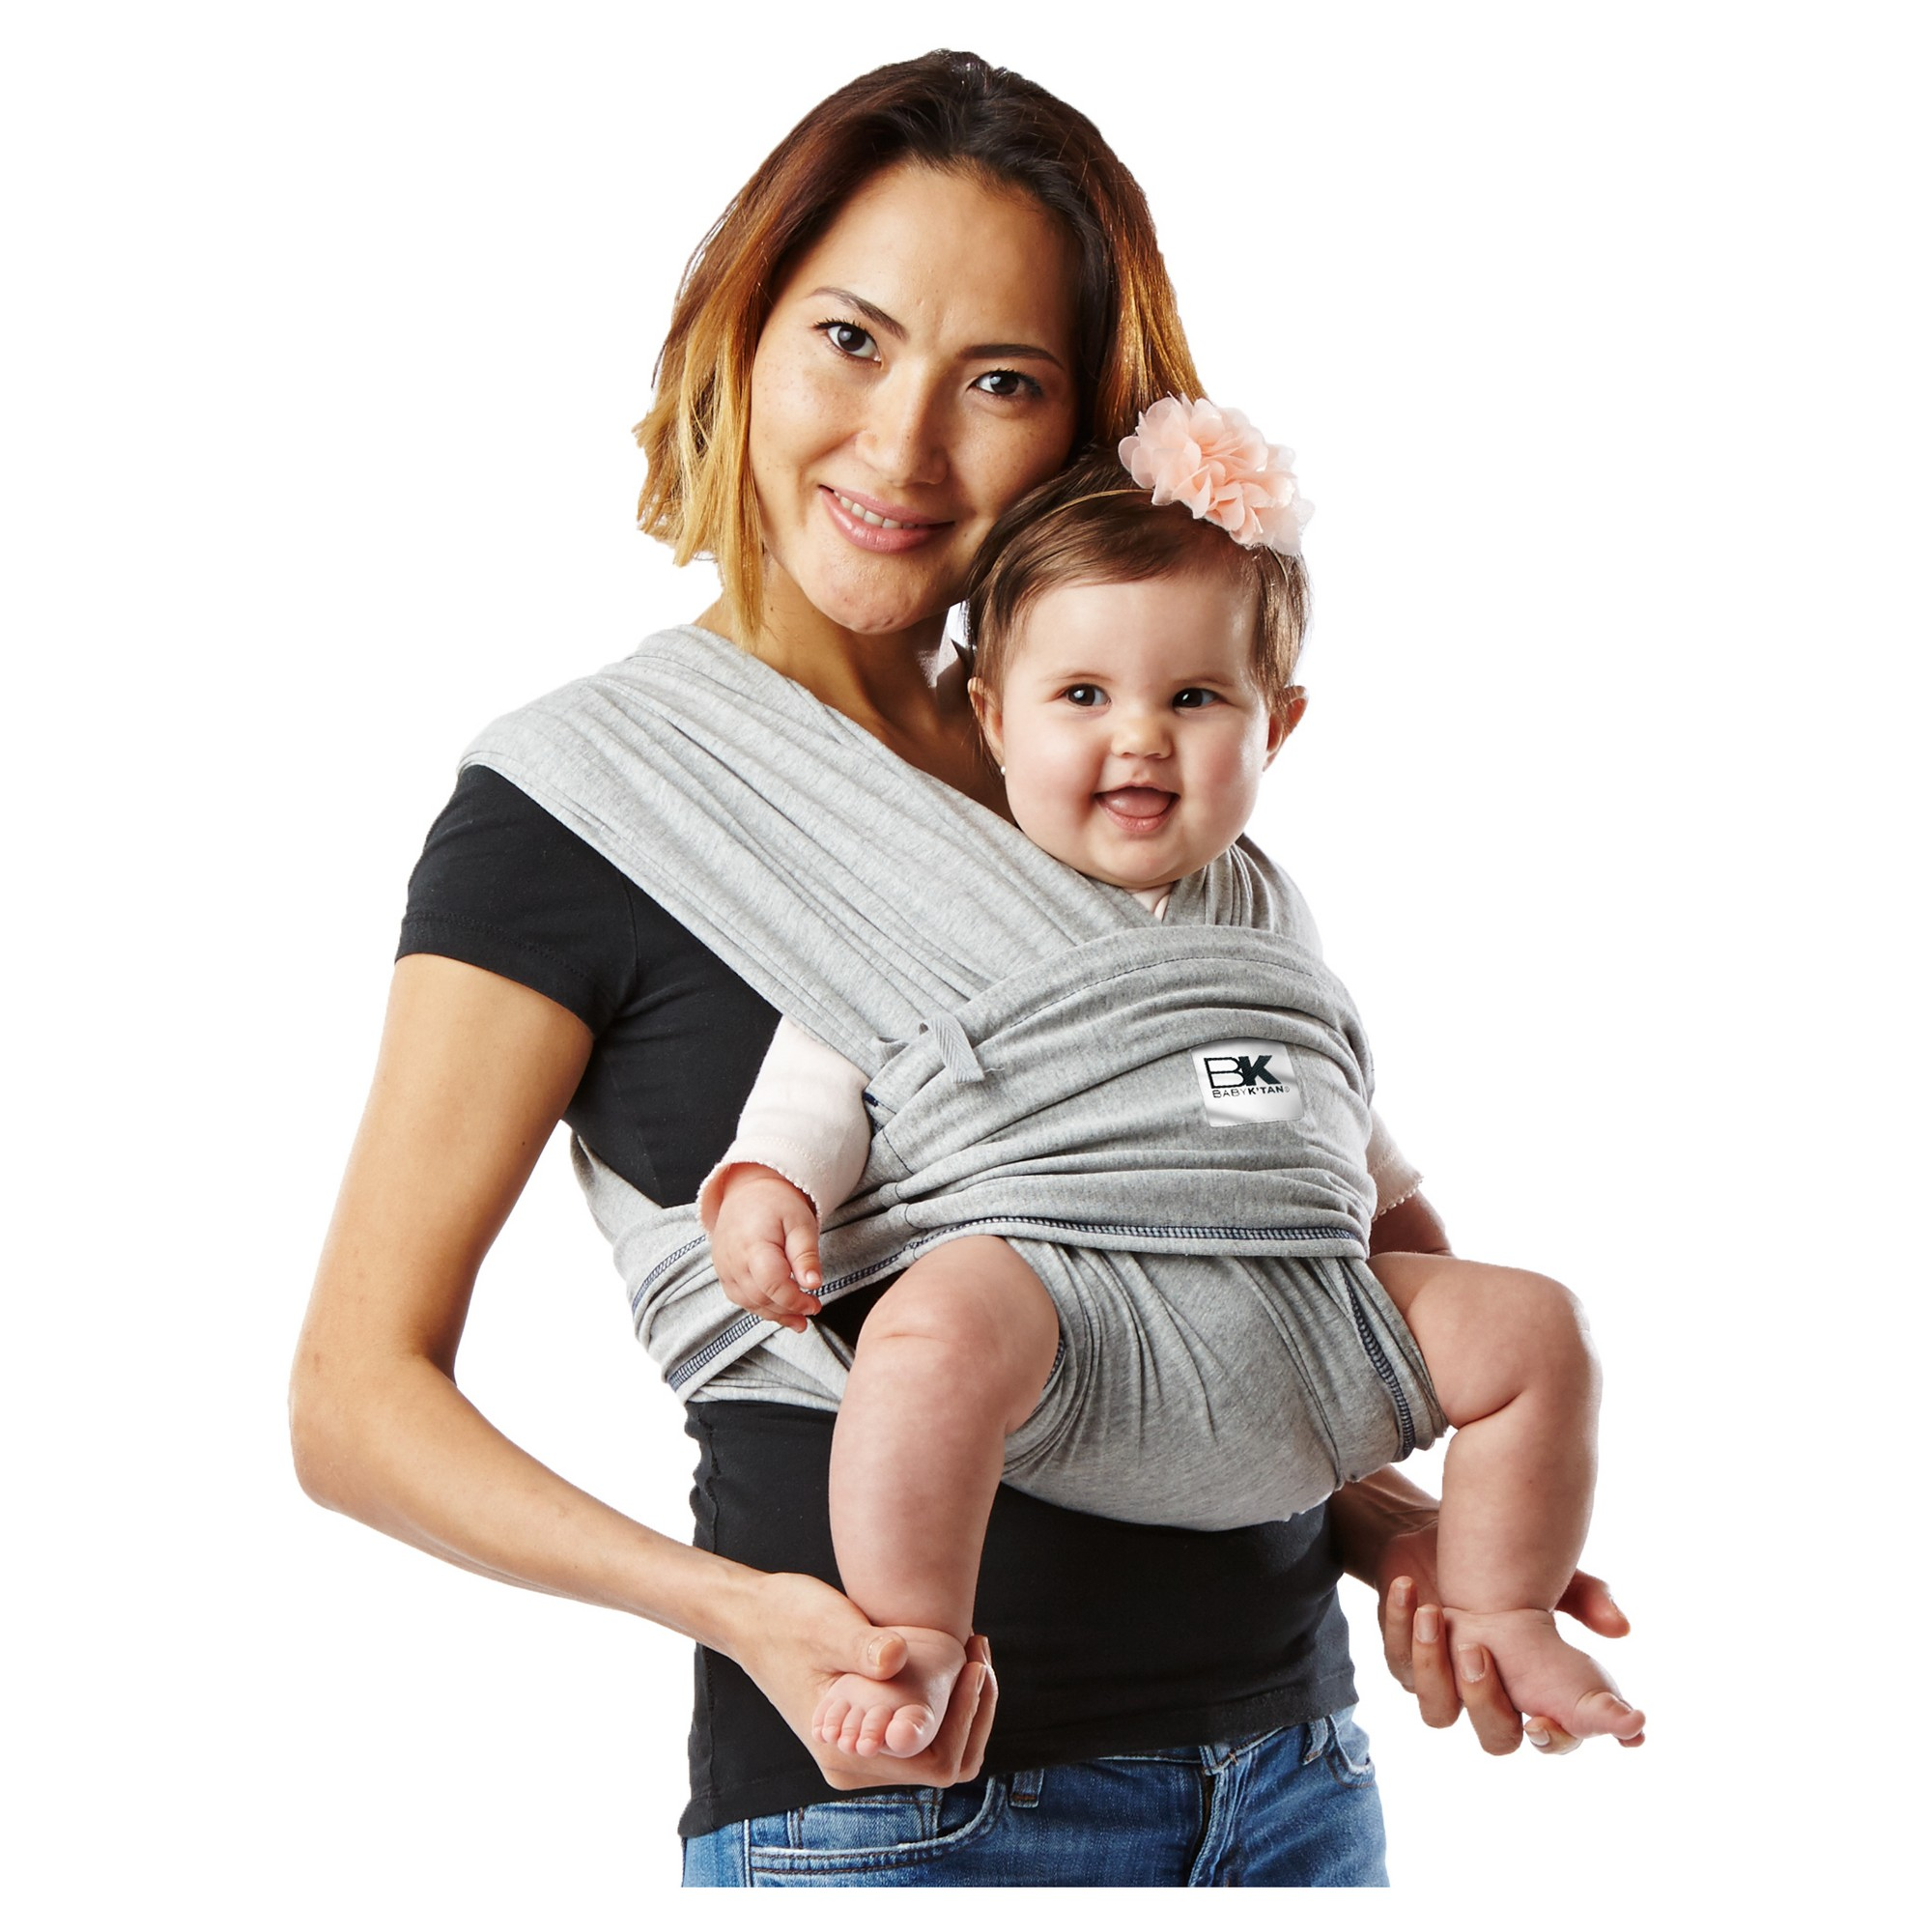 Baby Ktan ORIGINAL Cotton Wrap-style Baby Carrier Black X-small